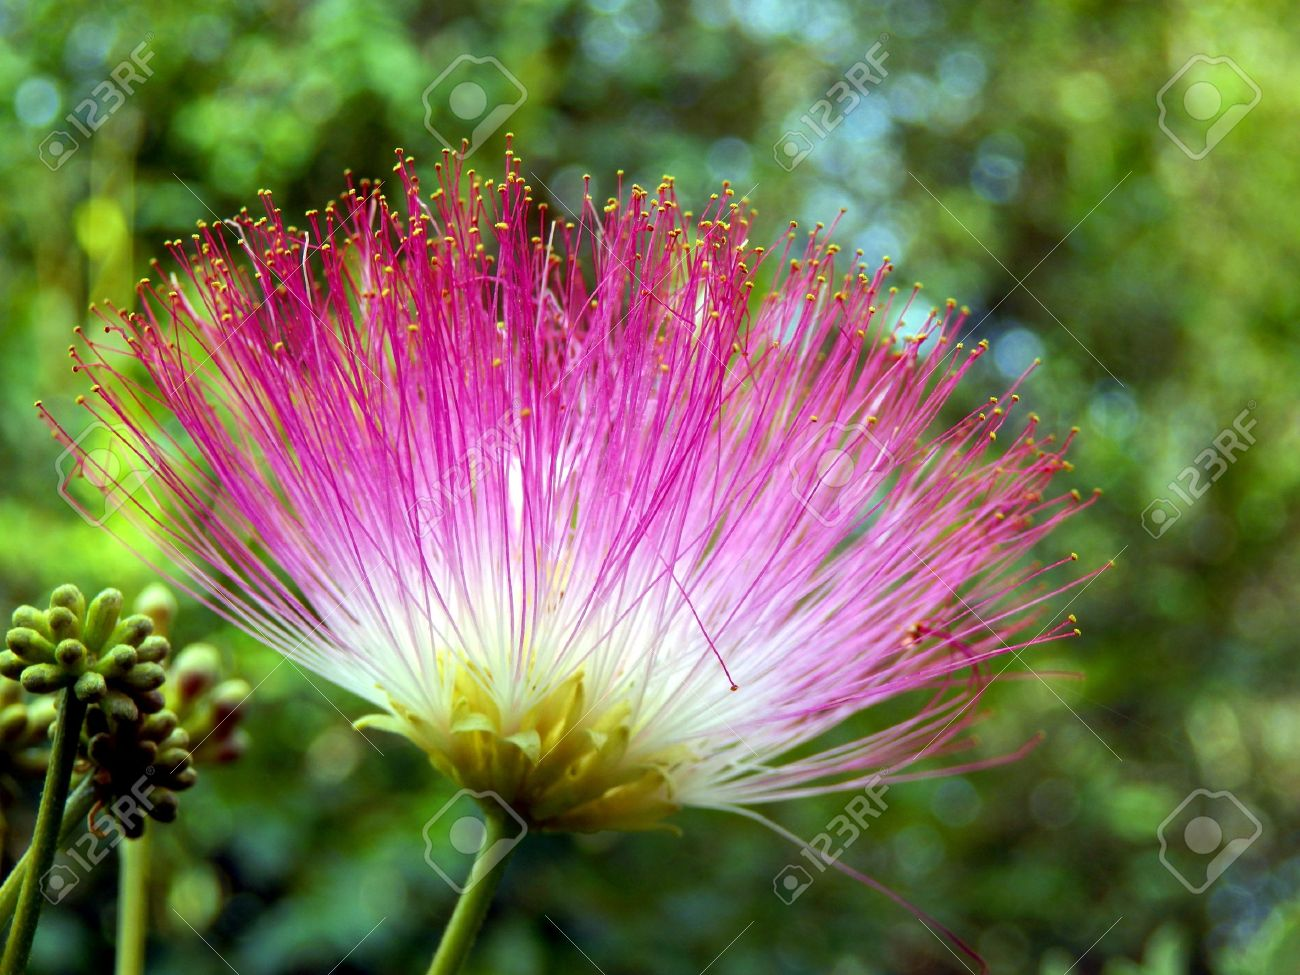 Flower of the persian silk tree or mimosa albizia julibrissin flower of the persian silk tree or mimosa albizia julibrissin stock photo 16945484 dhlflorist Gallery